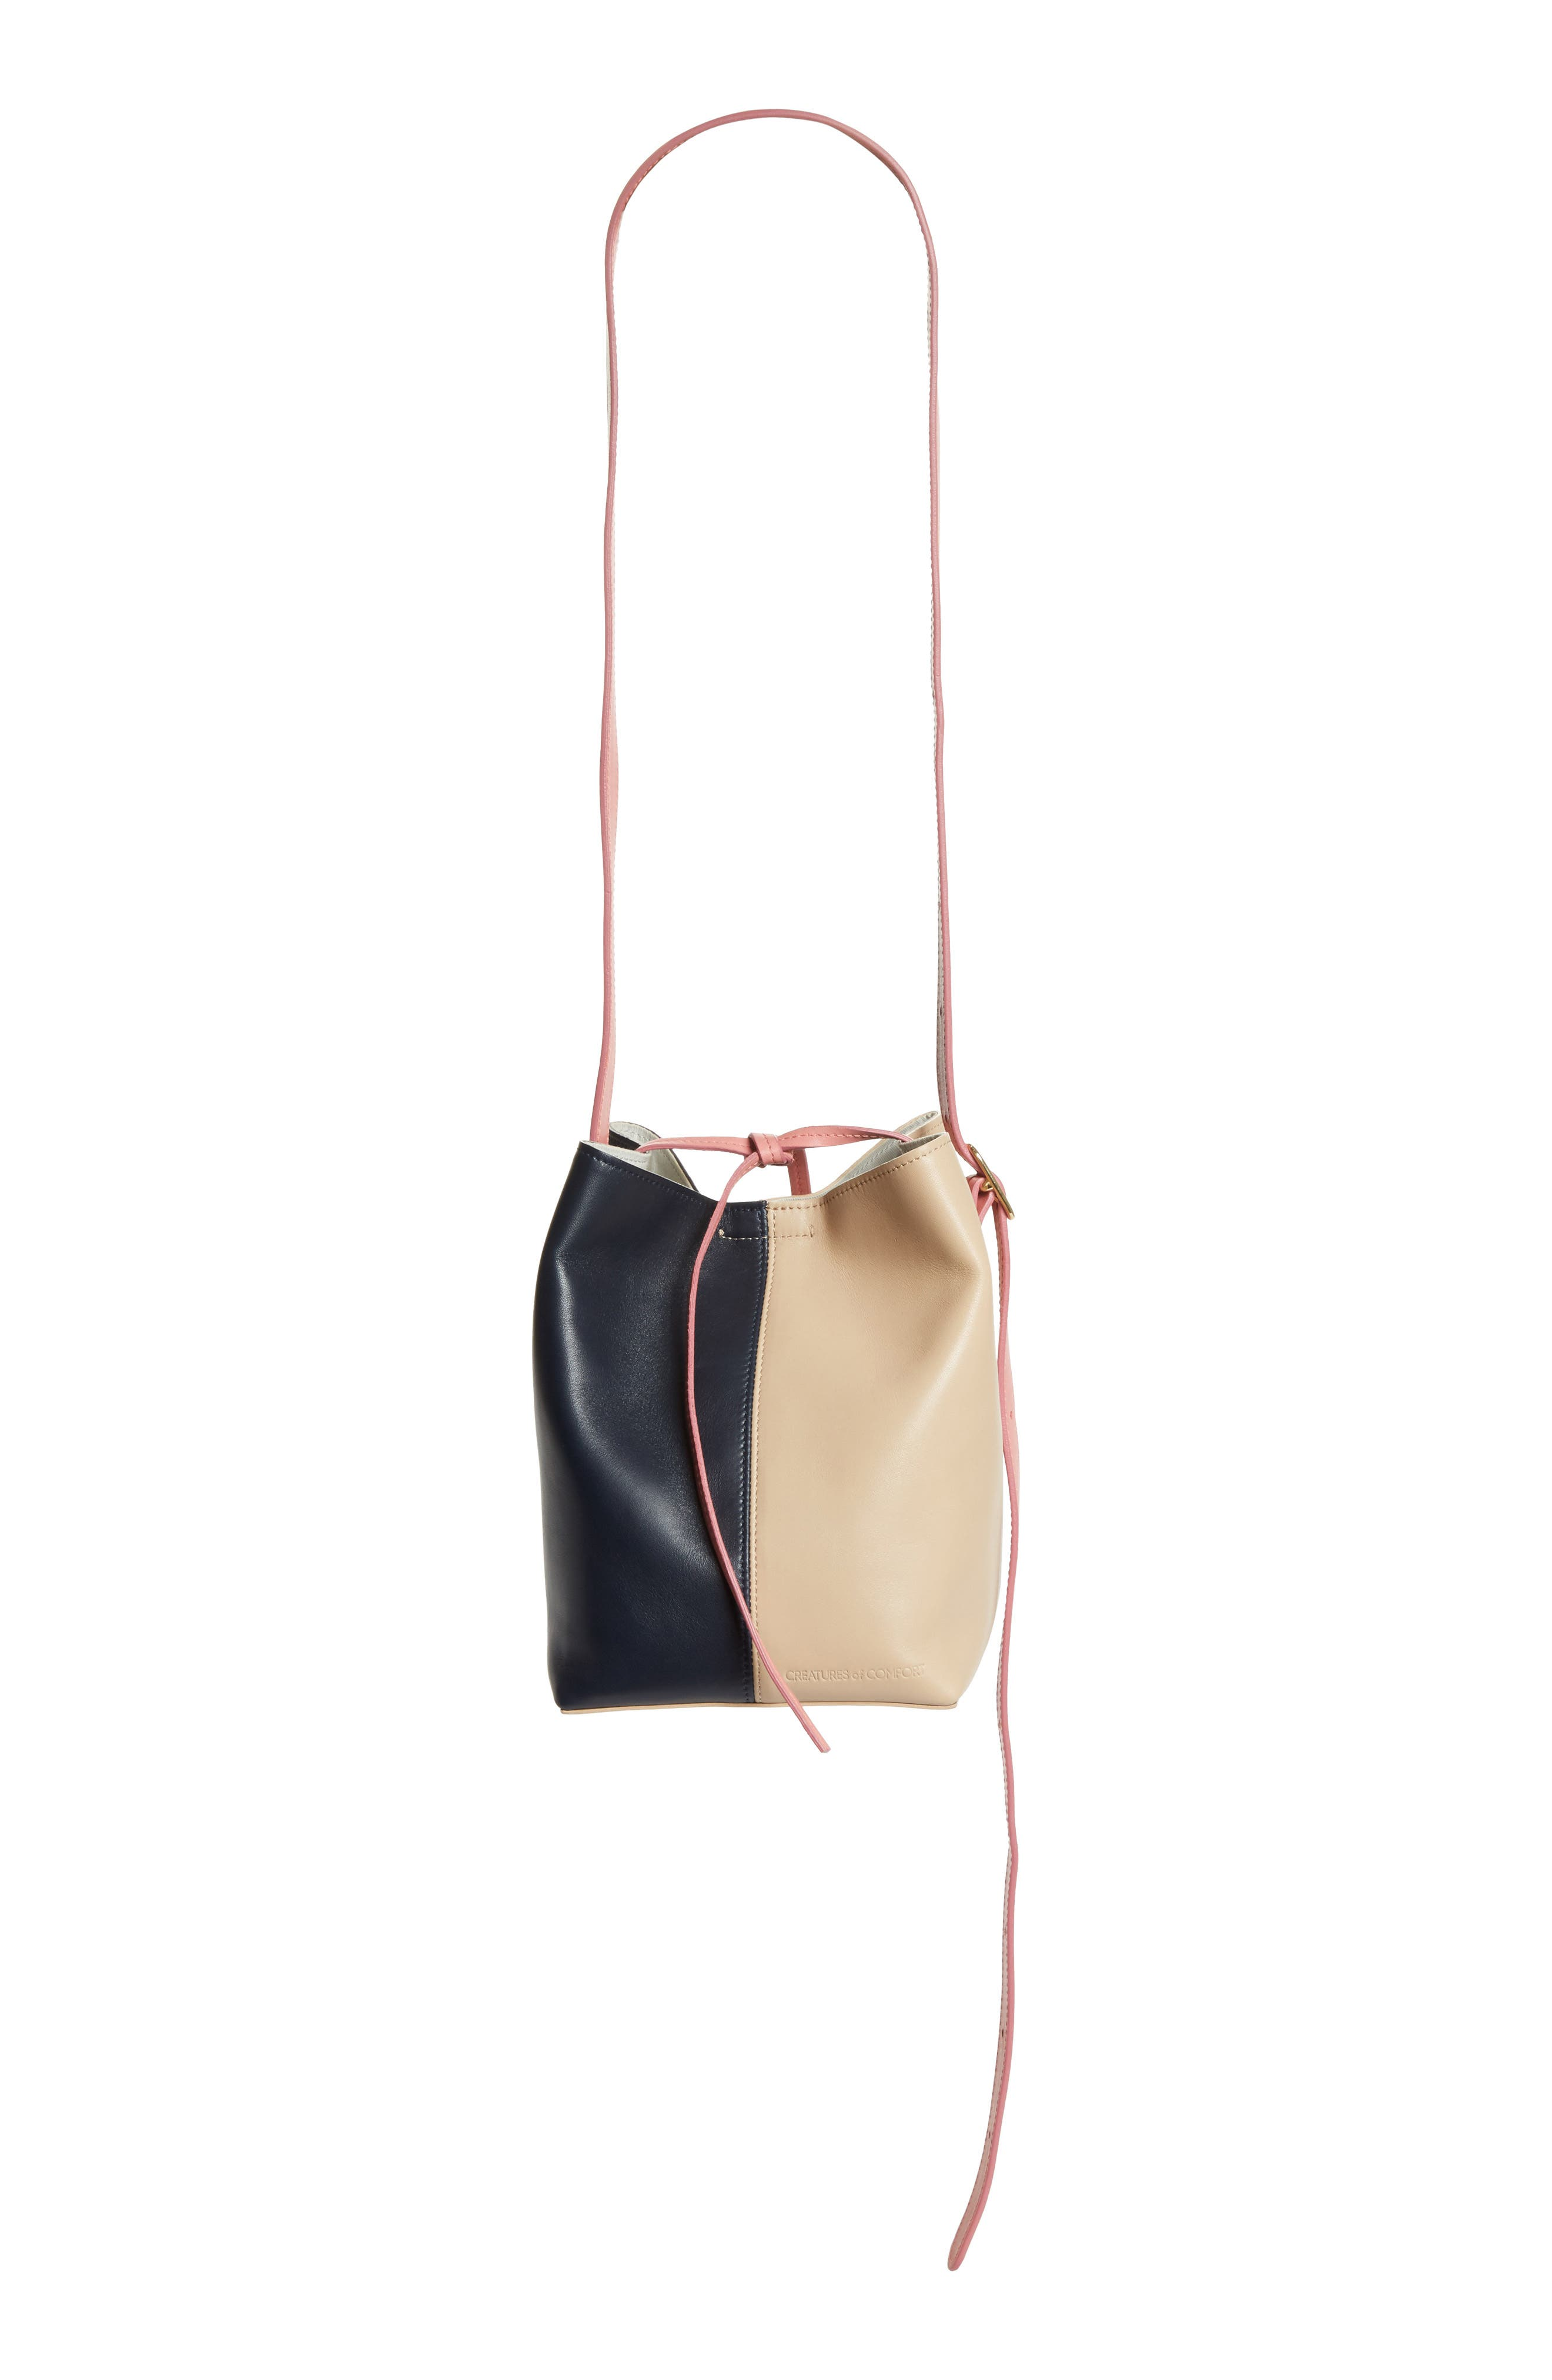 Creatures of Comfort Small Apple Tricolor Leather Bag